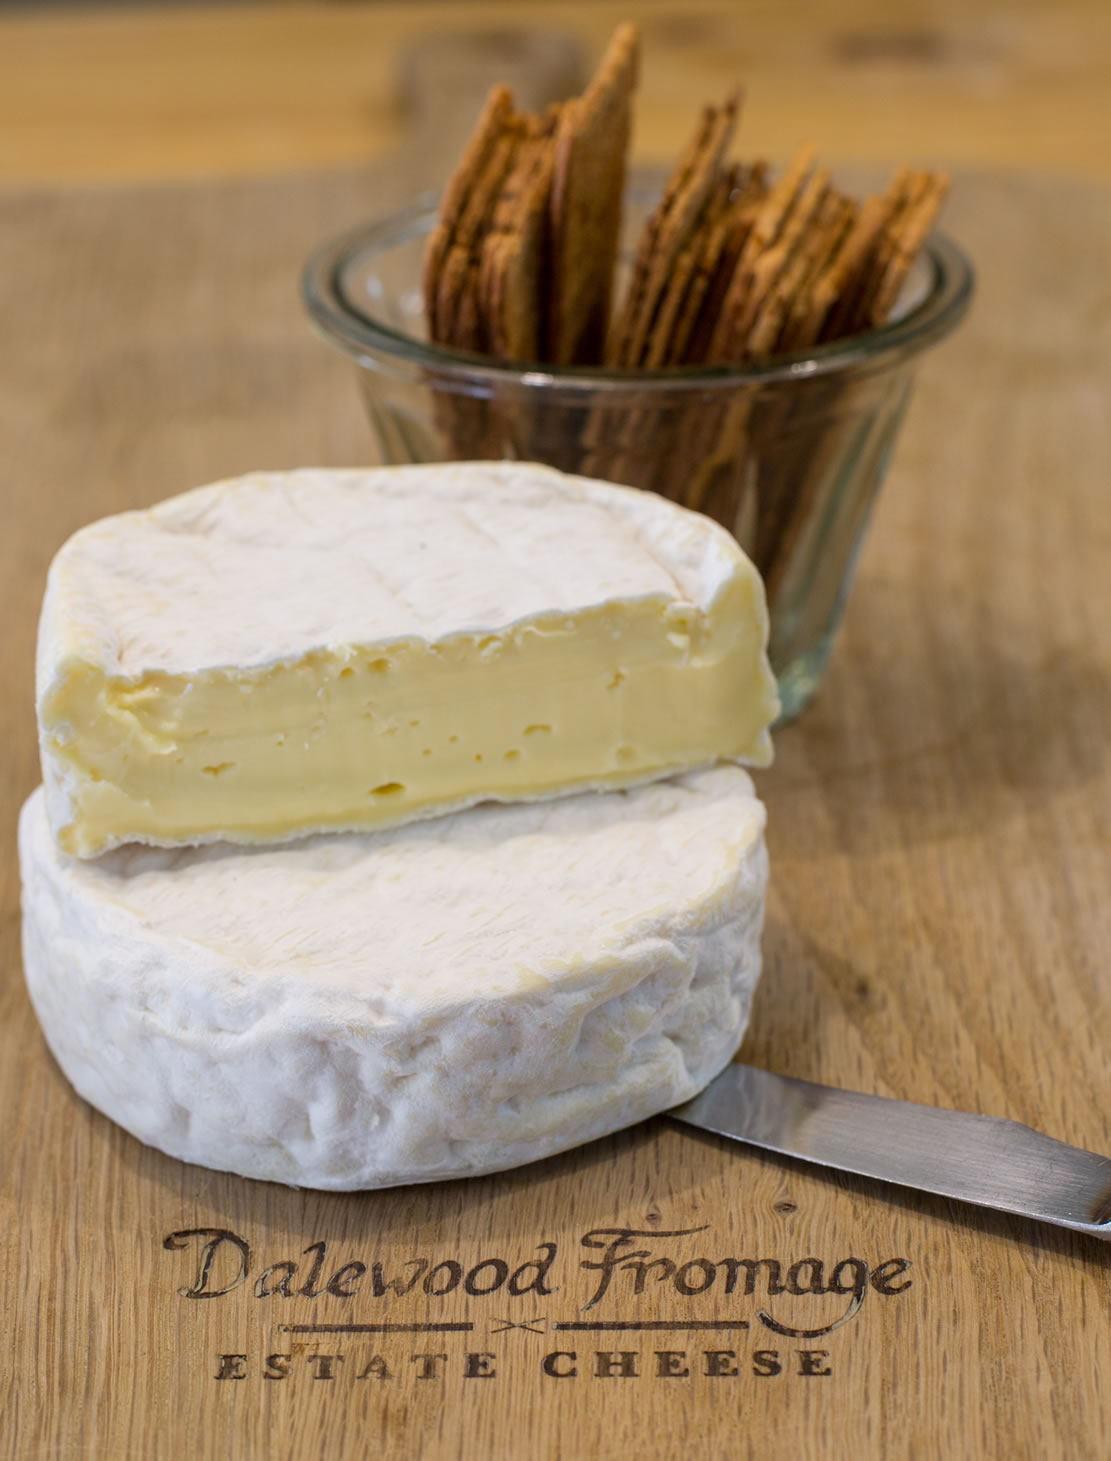 Dalewood Fromage Lanquedoc